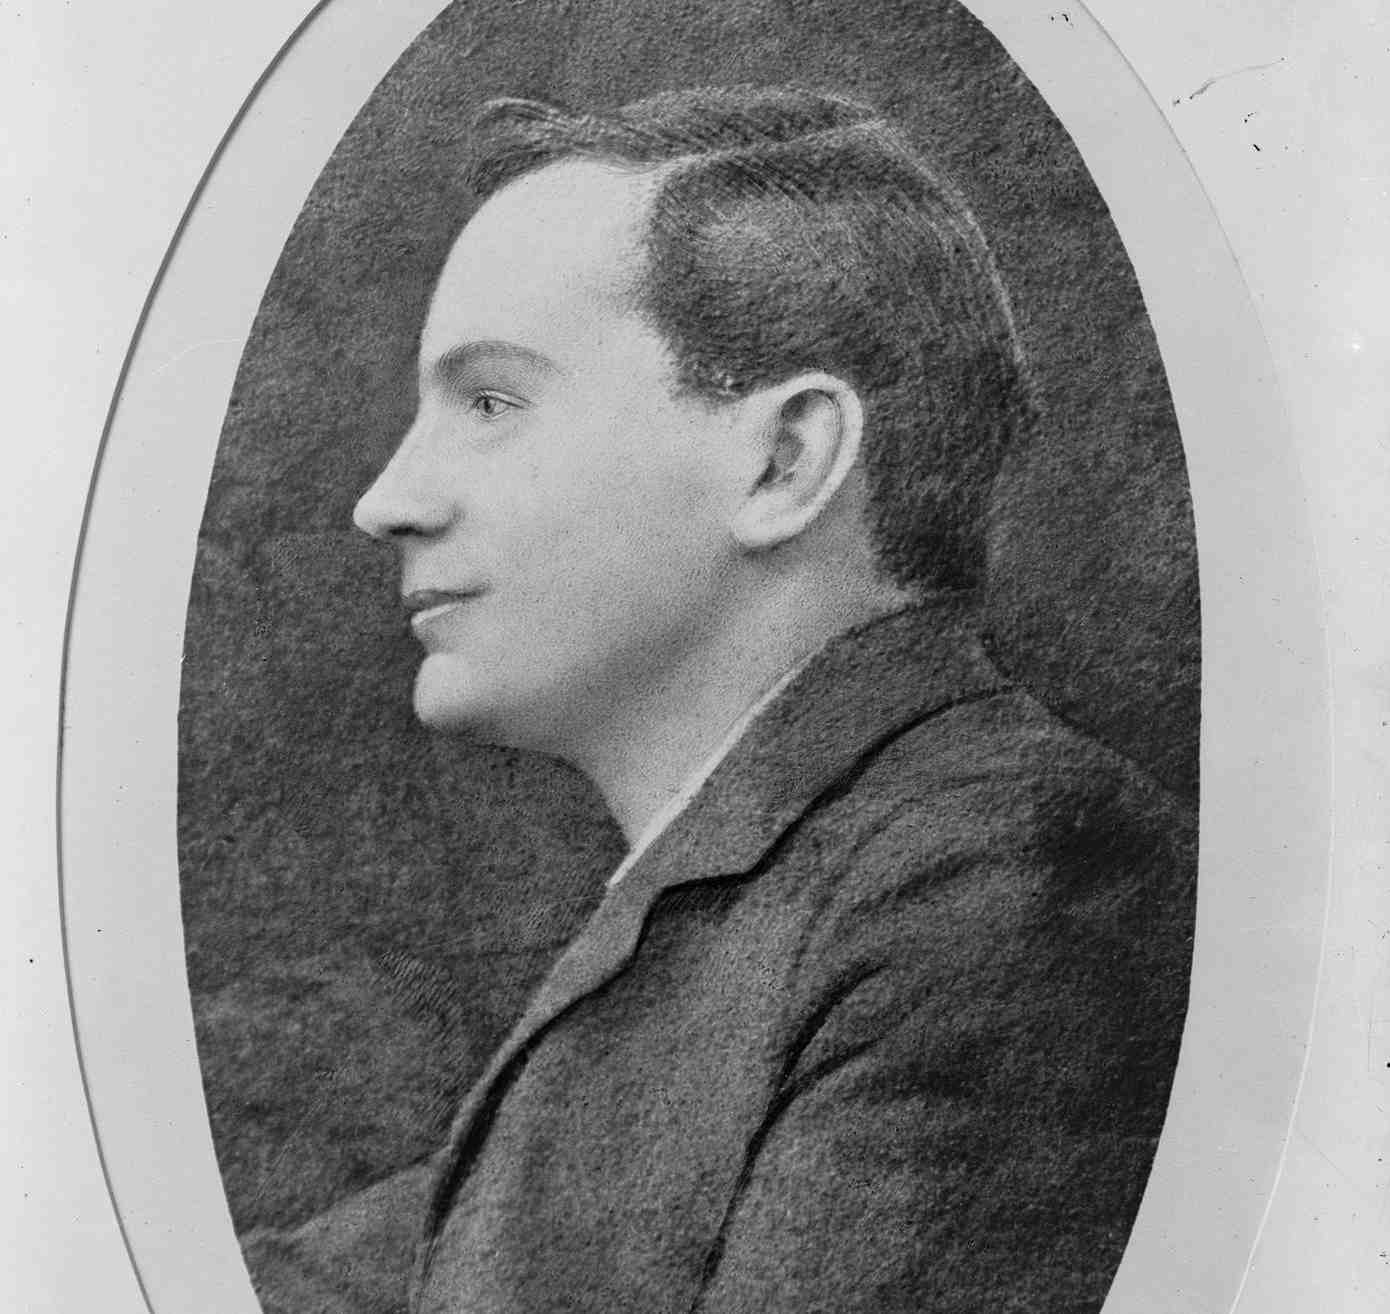 Patrick Pearse - schoolteacher, journalist and Irish language activist - has called for the arming of nationalist Ireland